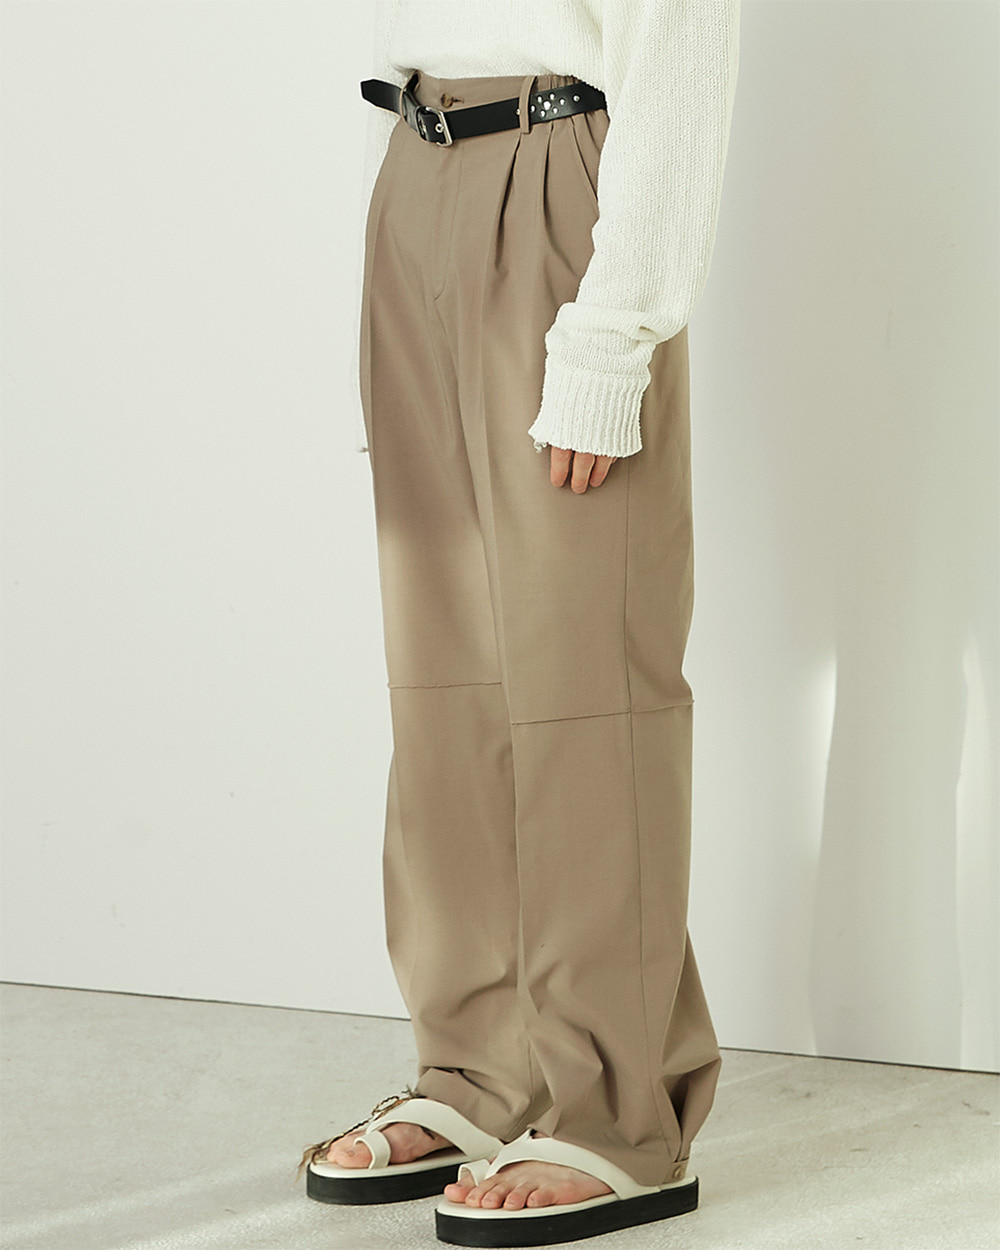 HALEINE알렌느 BEIGE backside belt 3D detail triacetate pants(NB004)**4/2일 배송**